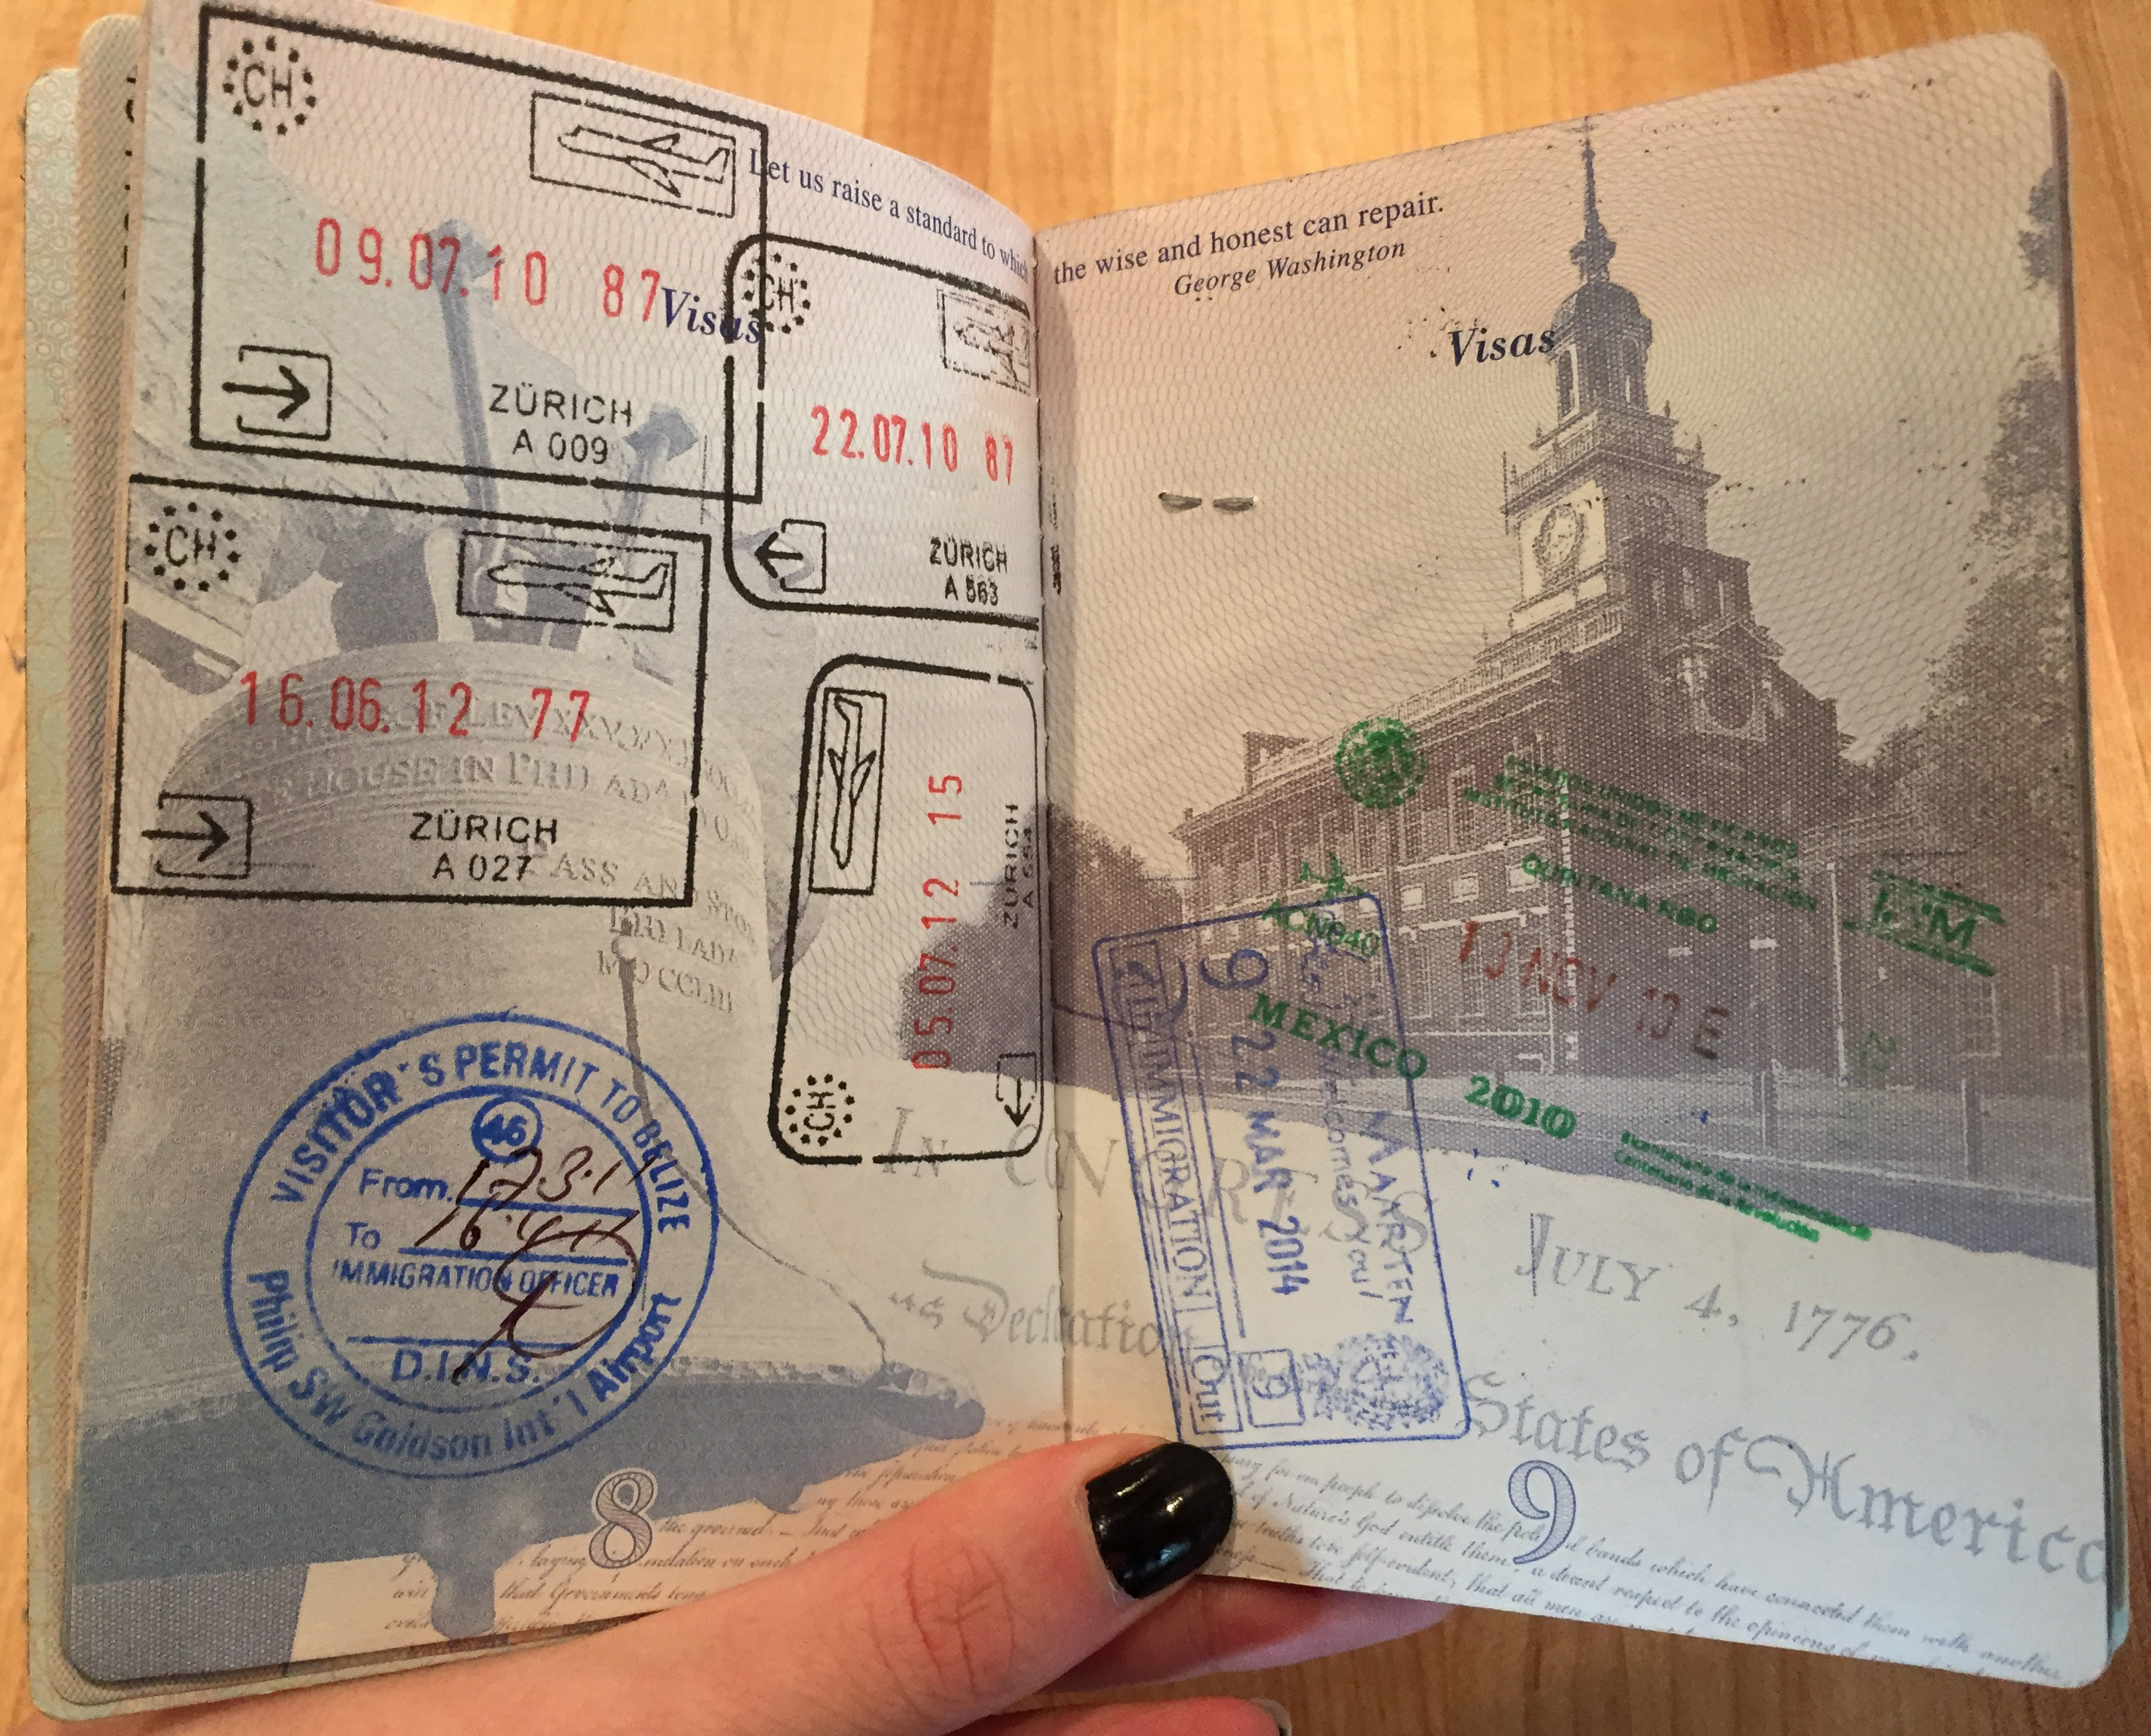 How many pages are in the passport of a Russian citizen